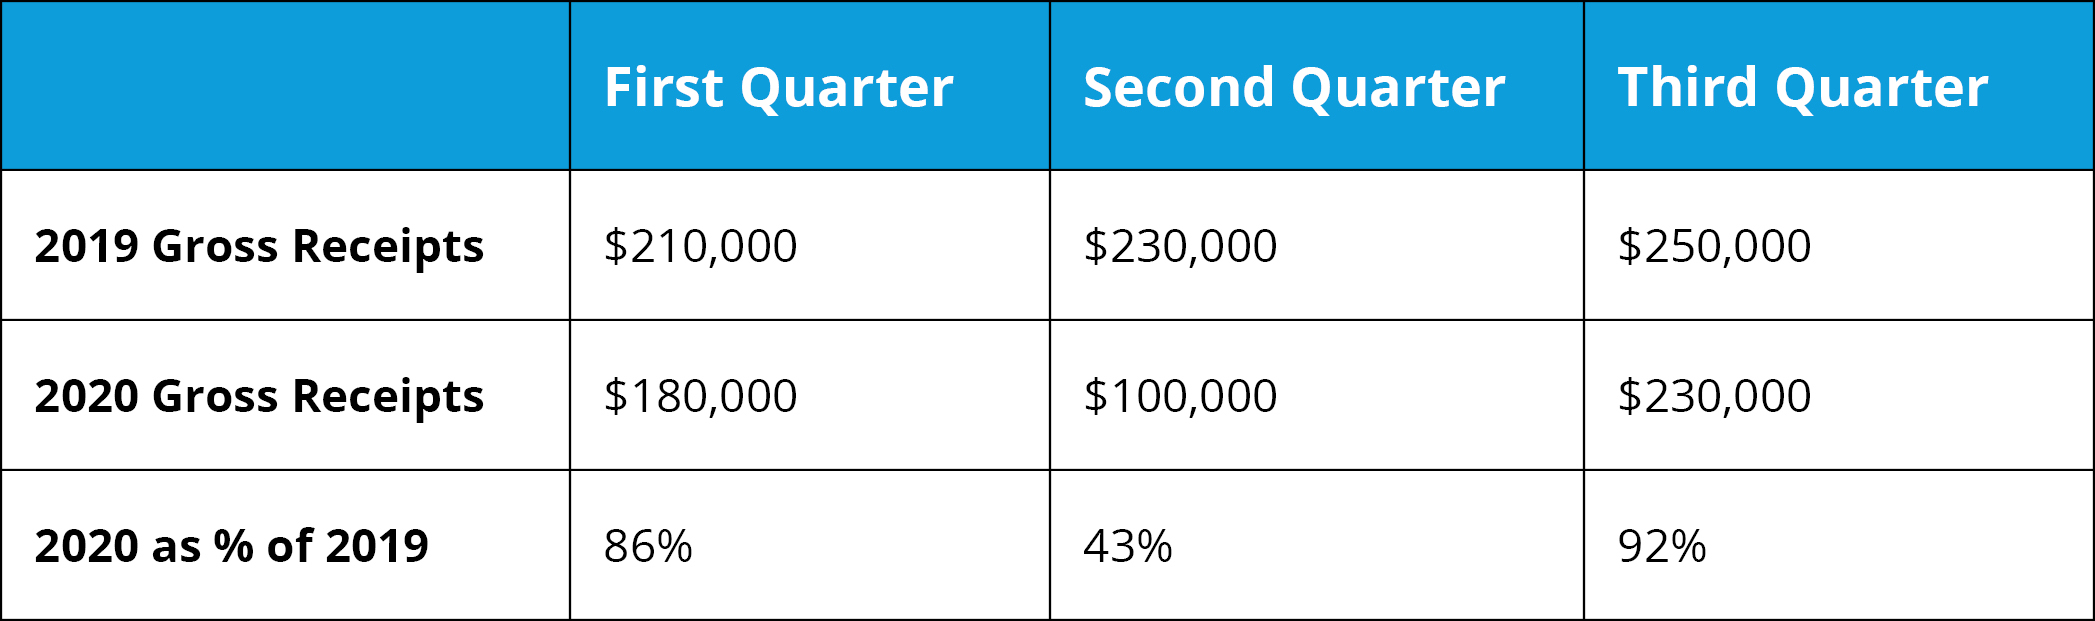 Ace - Quarterly Gross Receipts for 2019 and 2020